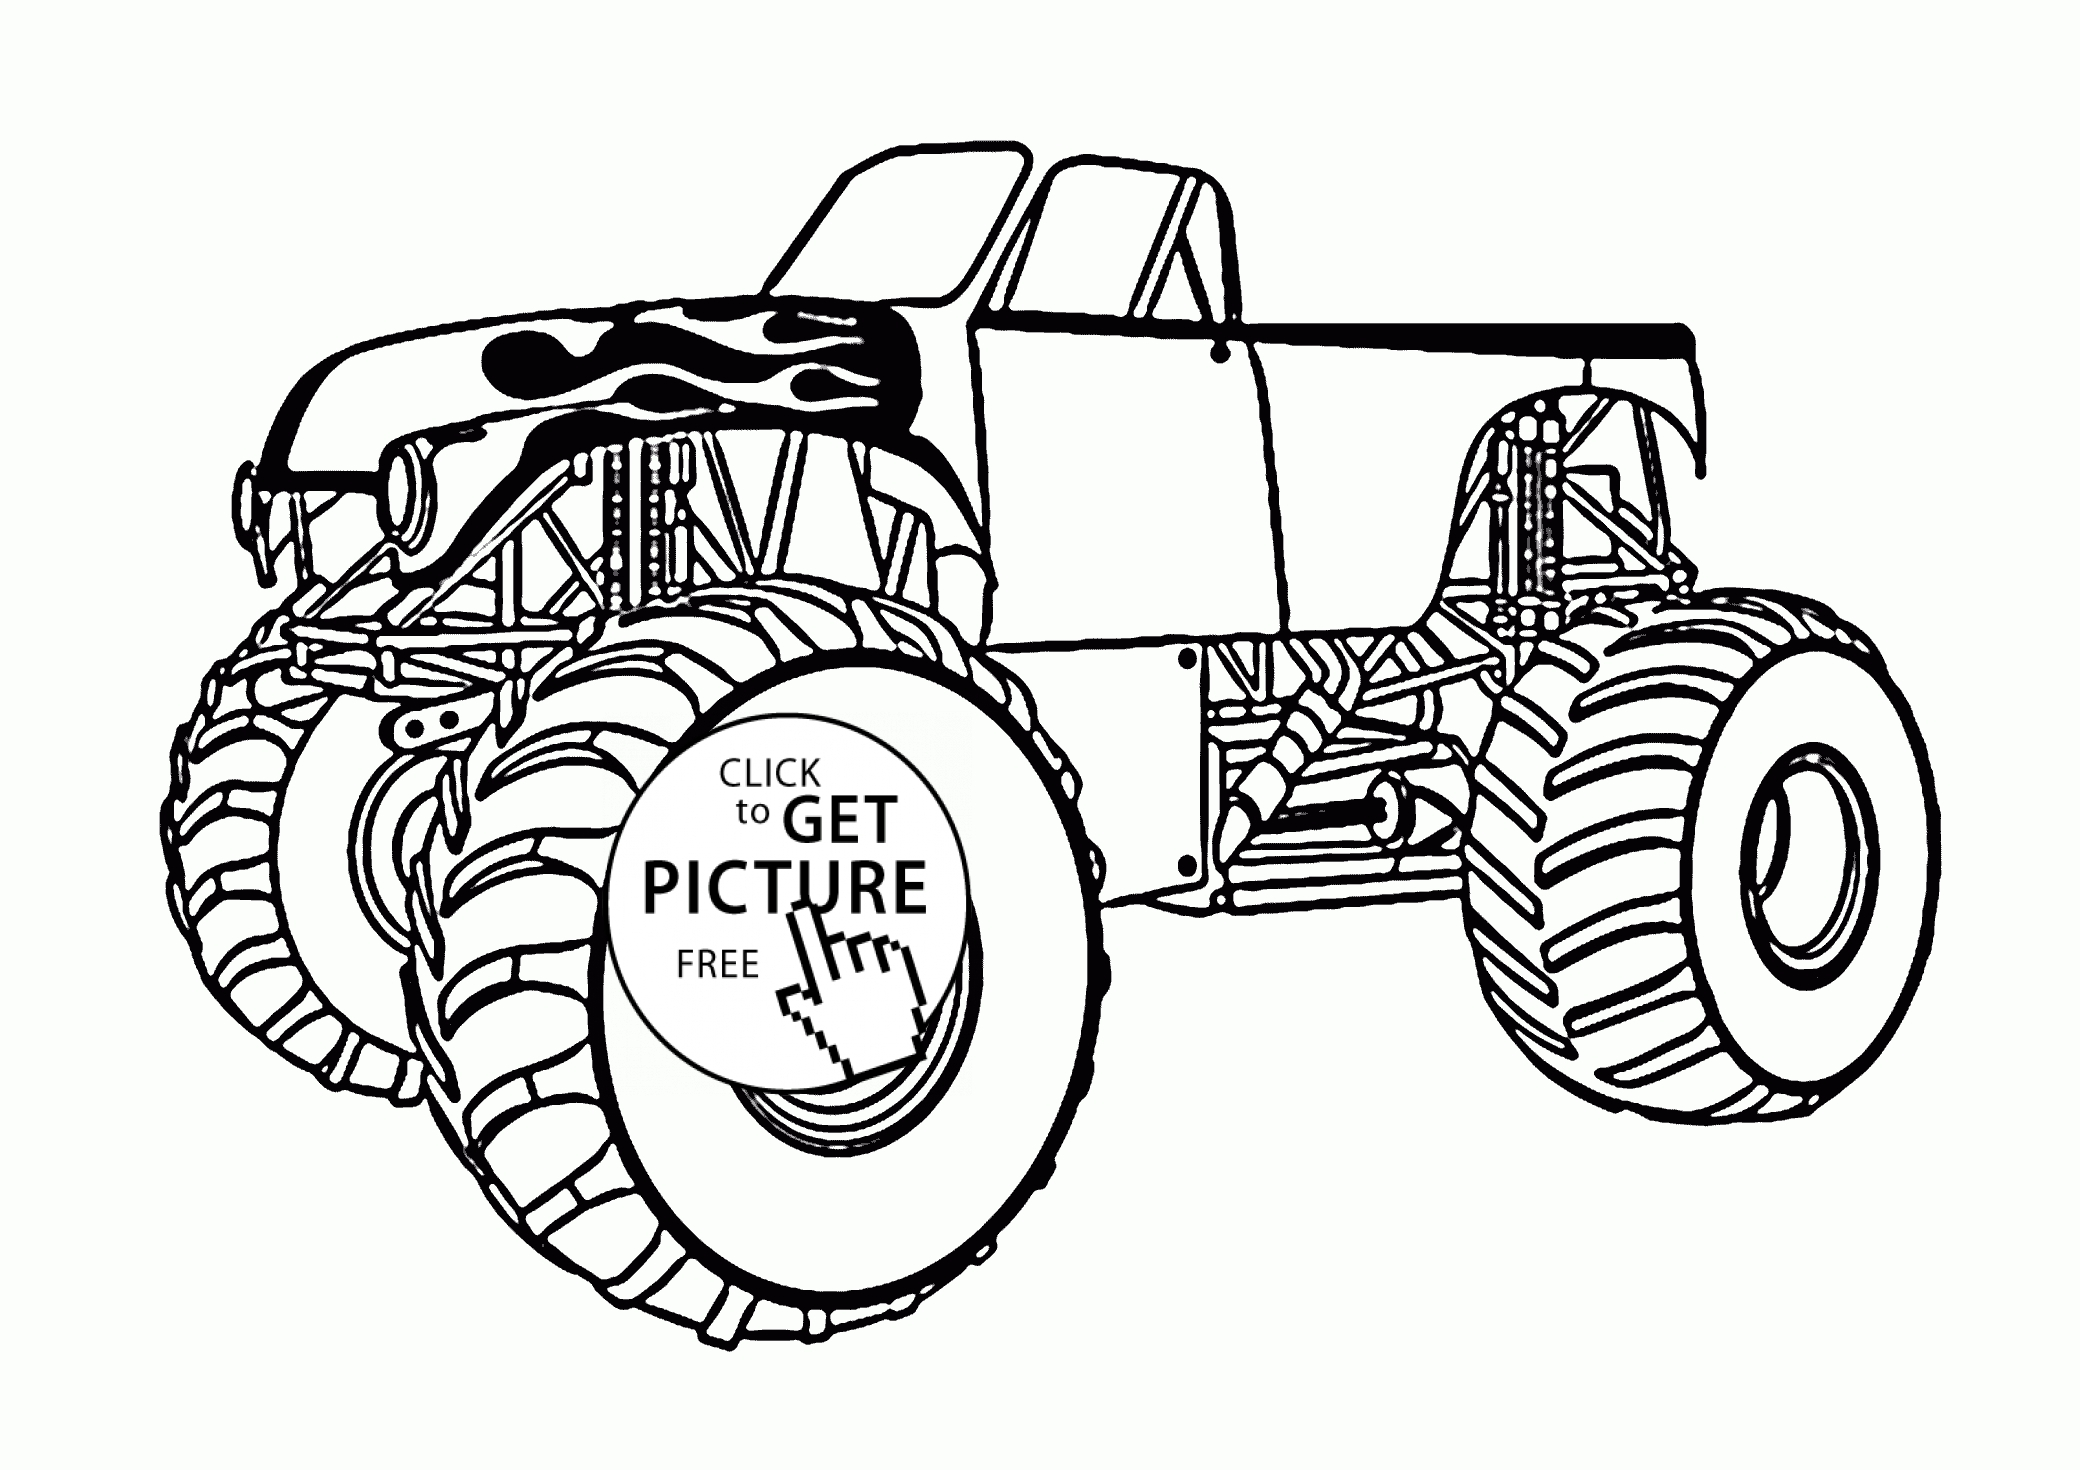 2080x1470 Dump Truck Tonka Coloring Page For Kids Transportation Coloring